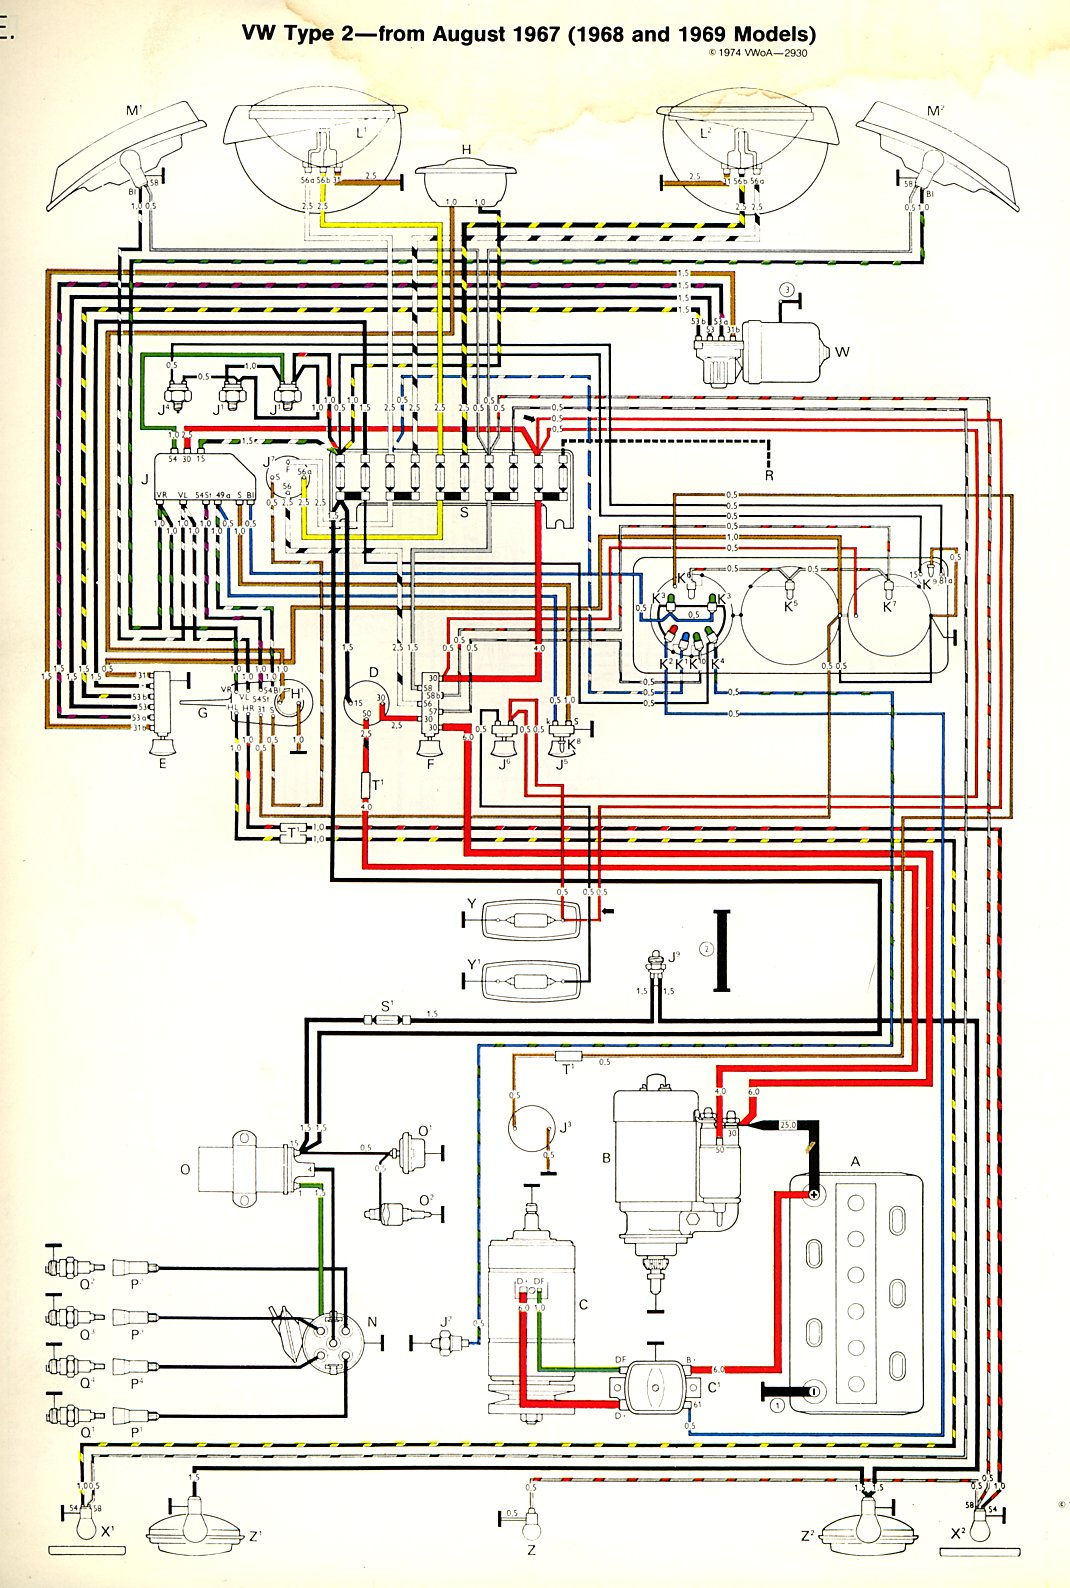 baybus_6869a thesamba com type 2 wiring diagrams 1973 vw wiring diagram at mifinder.co